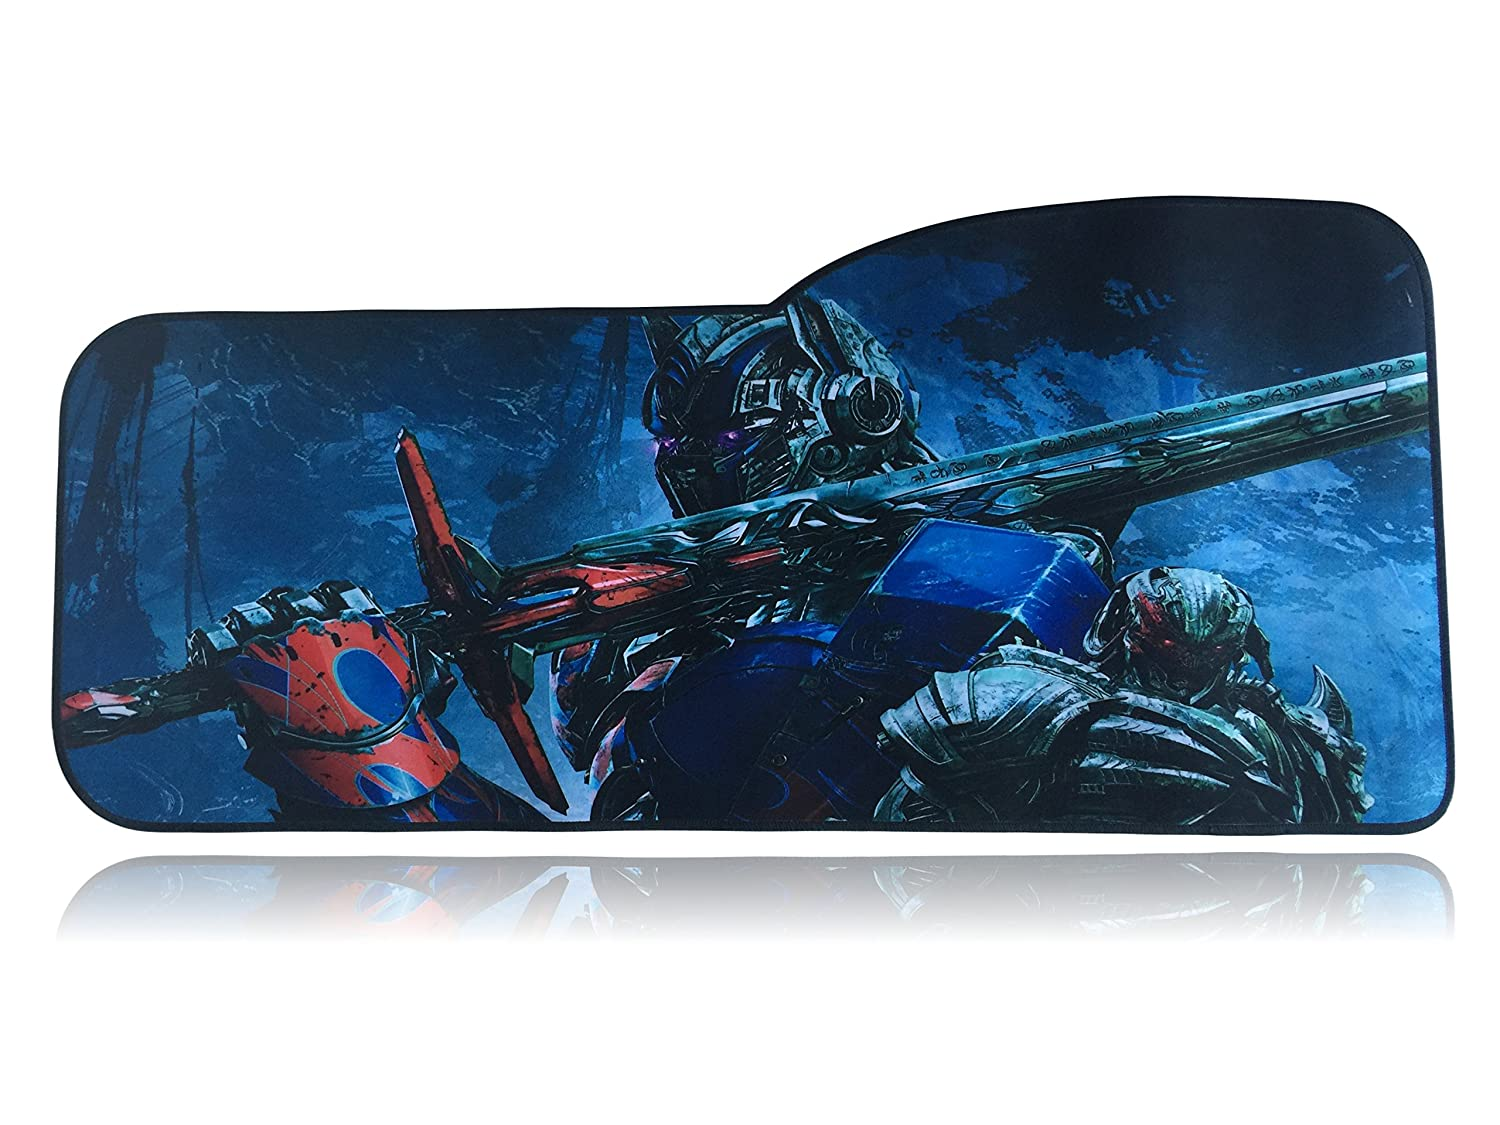 Extended Size Custom Gaming Mouse Pad Large Desk Mat Stitched Edges Anti Slip Rubber Overwatch D.Va 2 28.5 x 12.75 x 0.12